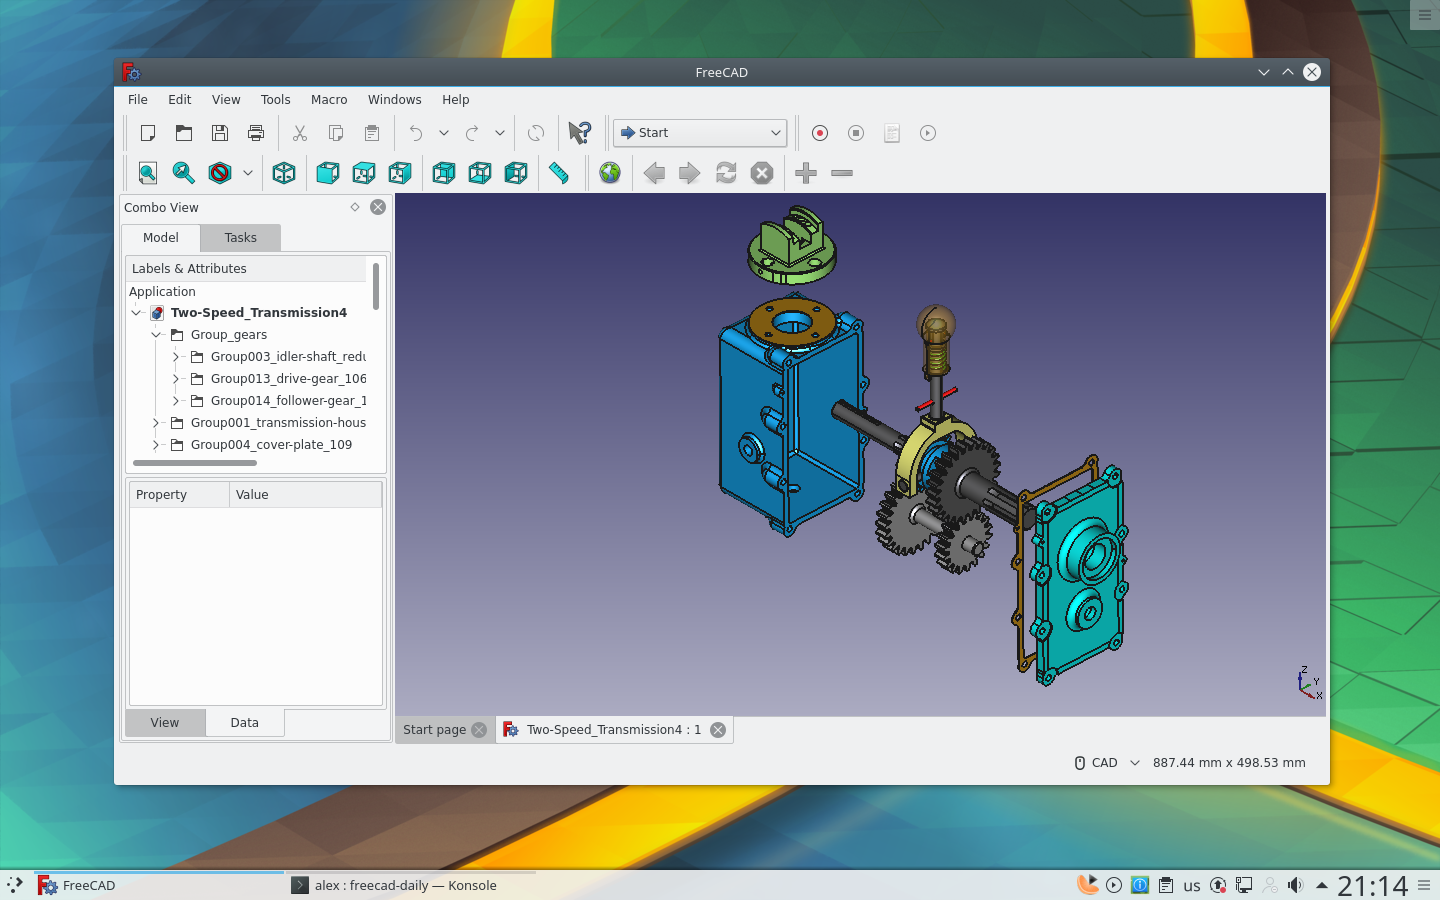 notesalexp org | Details of package freecad-daily in Debian Buster